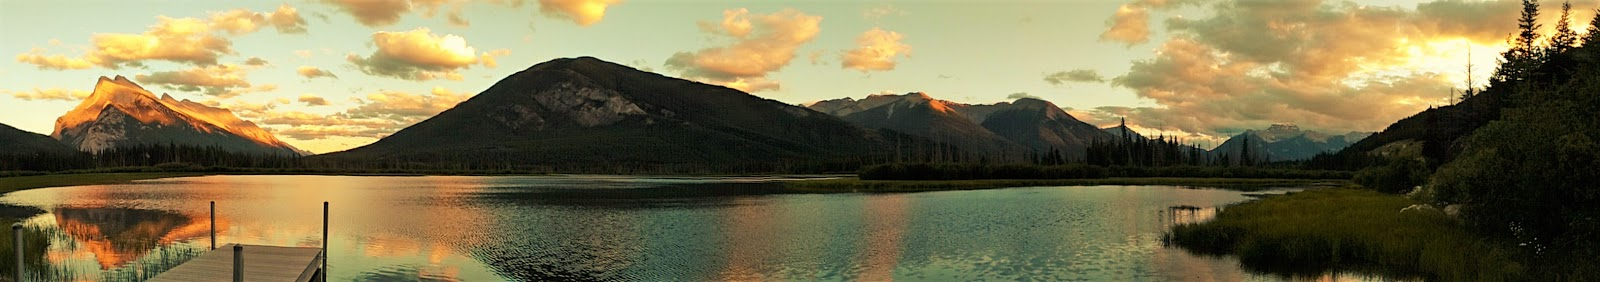 Vermilion Lakes Sunset, Banff